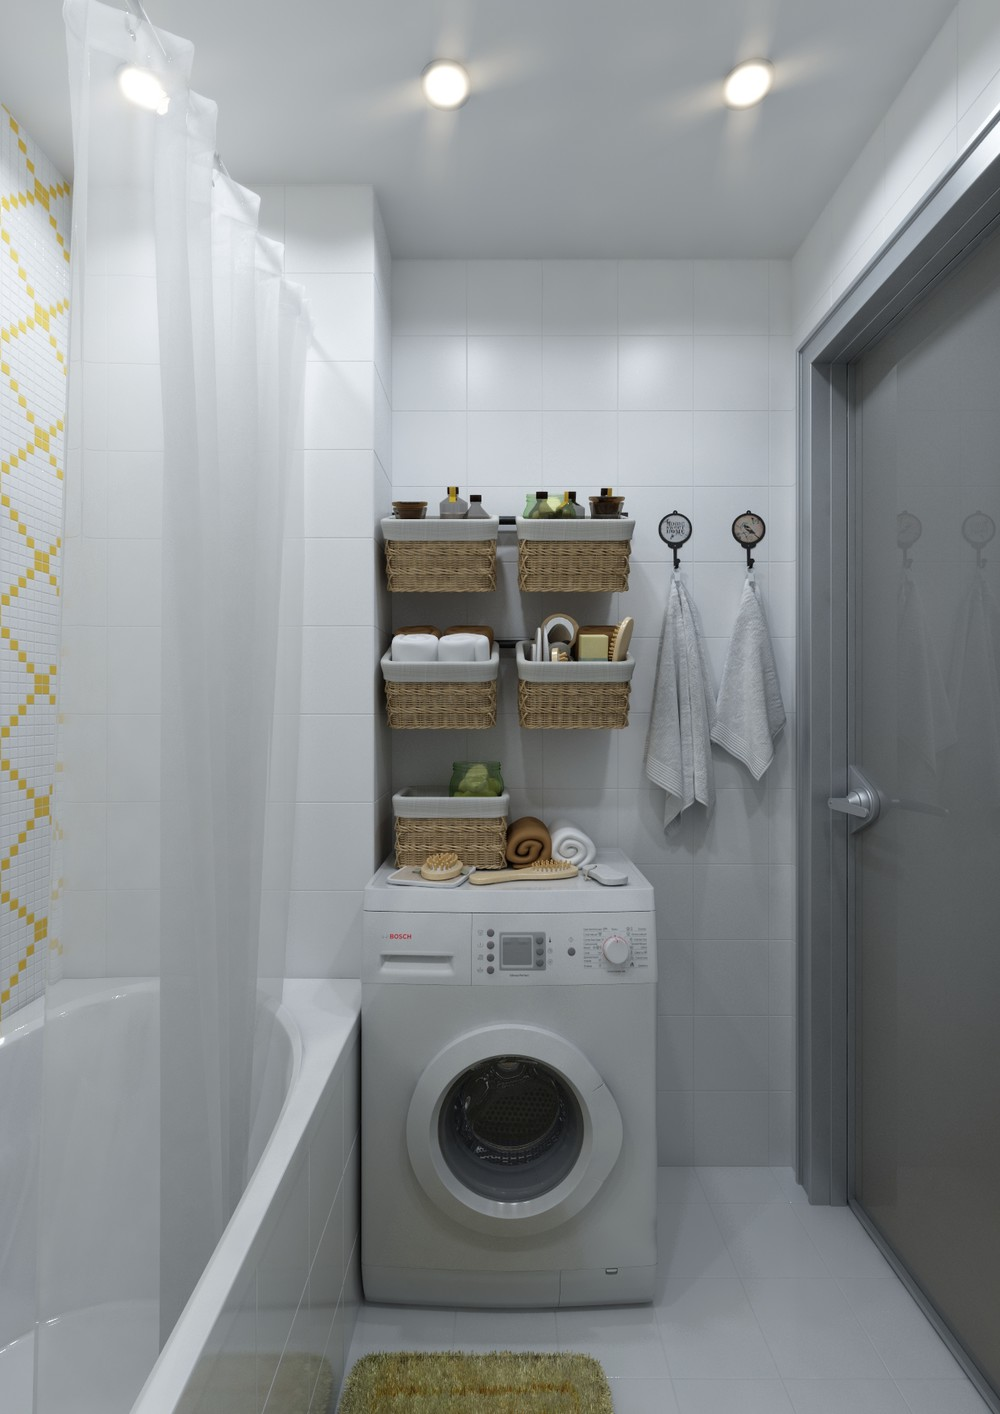 Small Bathroom Storage Inspiration - 4 inspiring home designs under 300 square feet with floor plans